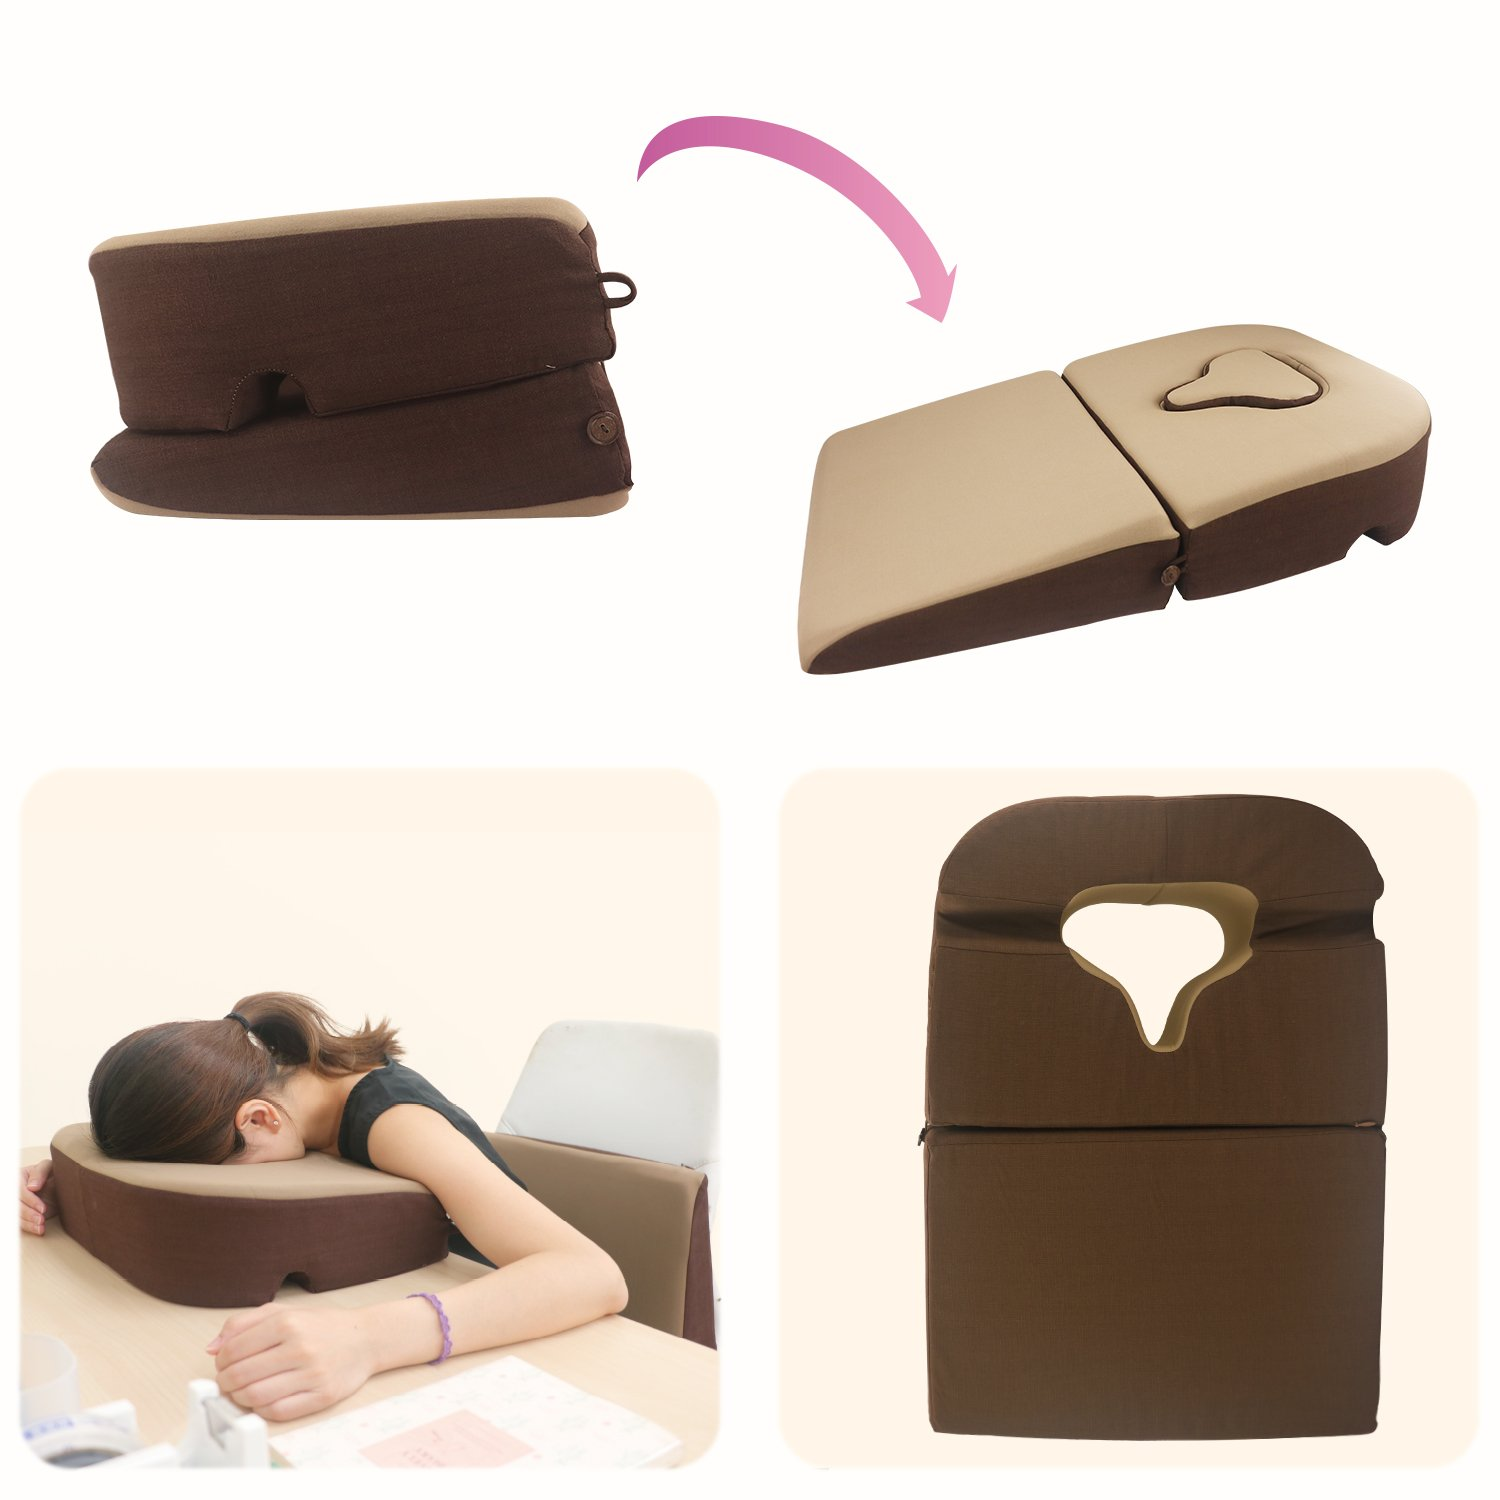 Prodigy TW Face Down Pillow, for Post-Eye-Surgery use,Wedge Cushion, Removable Cover by Prodigy TW (Image #2)